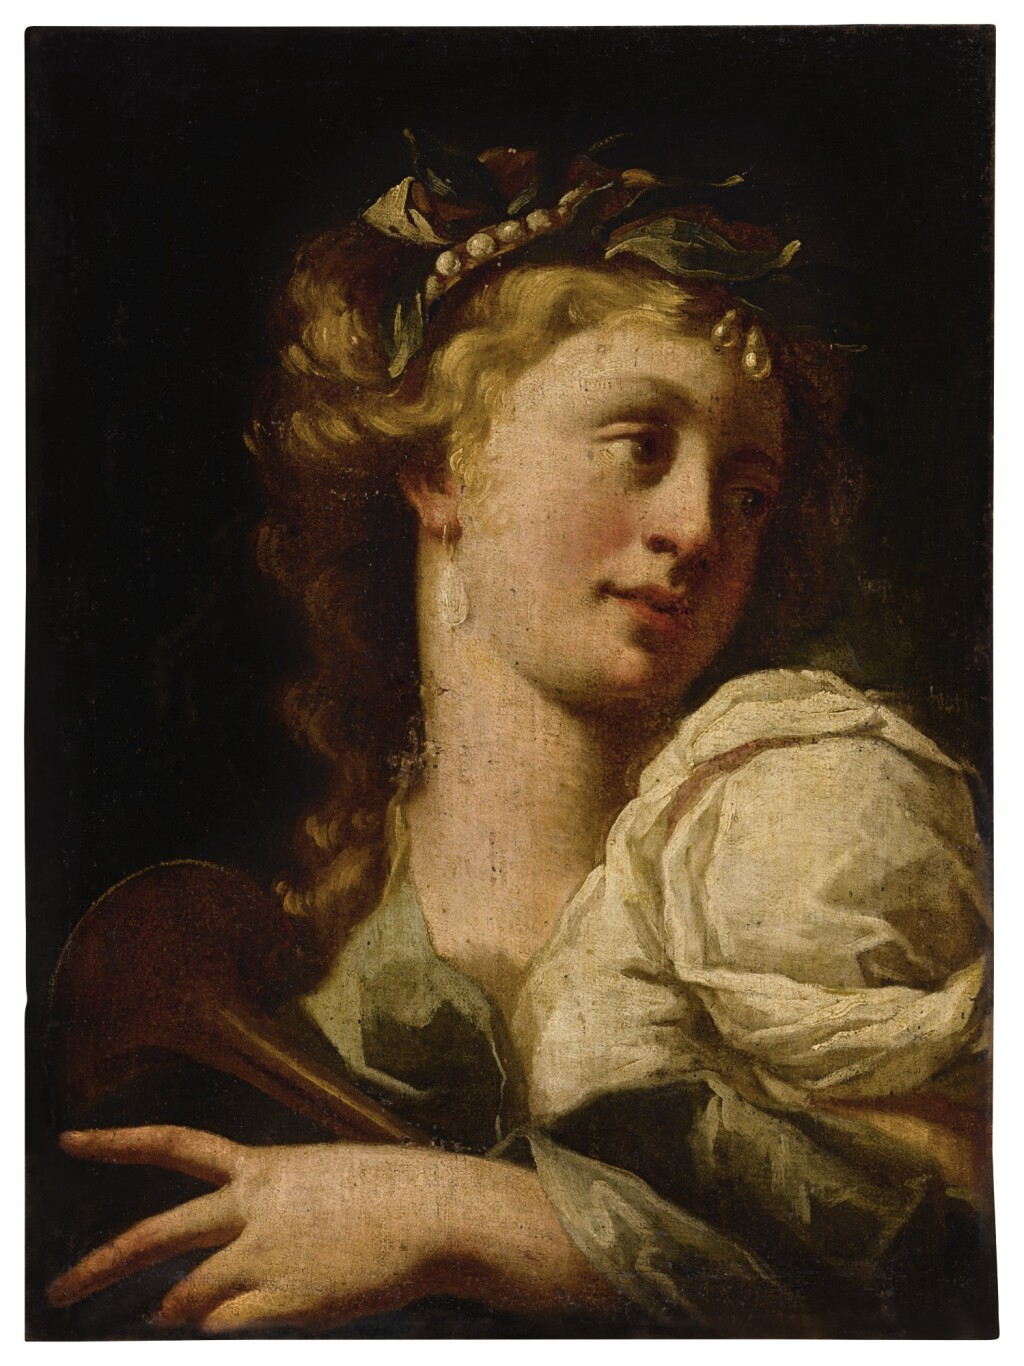 NORTH ITALIAN SCHOOL, 17TH CENTURY   PORTRAIT OF A LADY, BUST LENGTH, PLAYING A MUSICAL INSTRUMENT